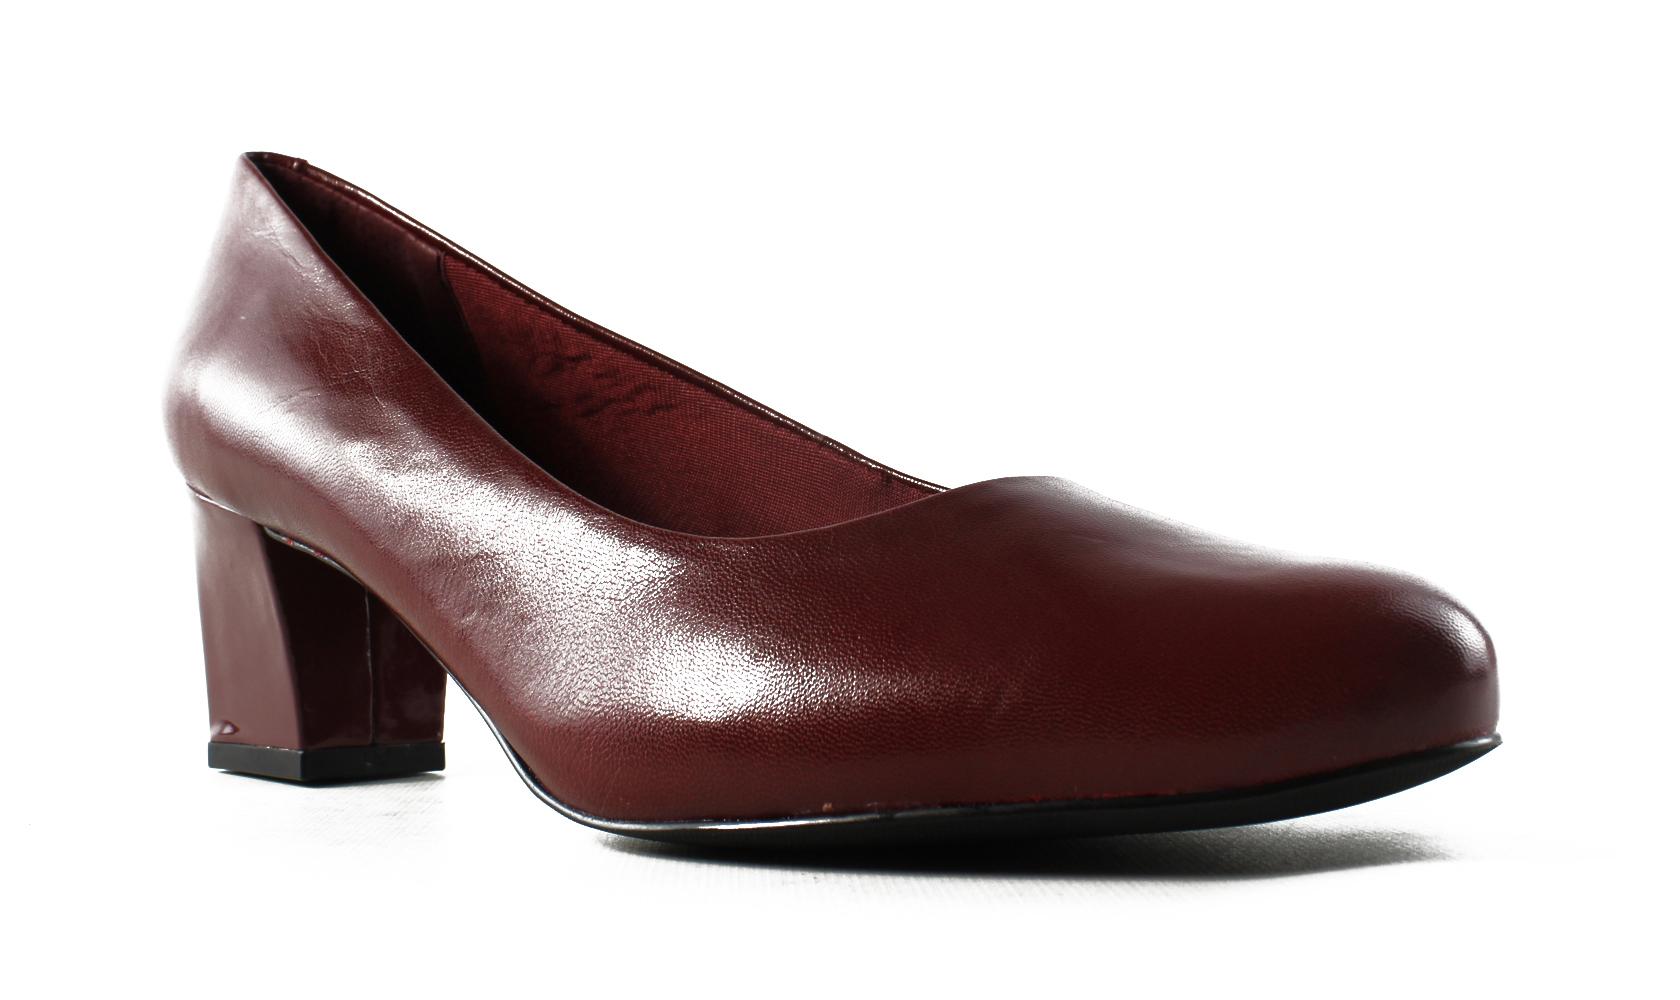 New Trotters Womens Candela DarkRed Pumps Size 8.5 Wide (C, D, W) by Trotters